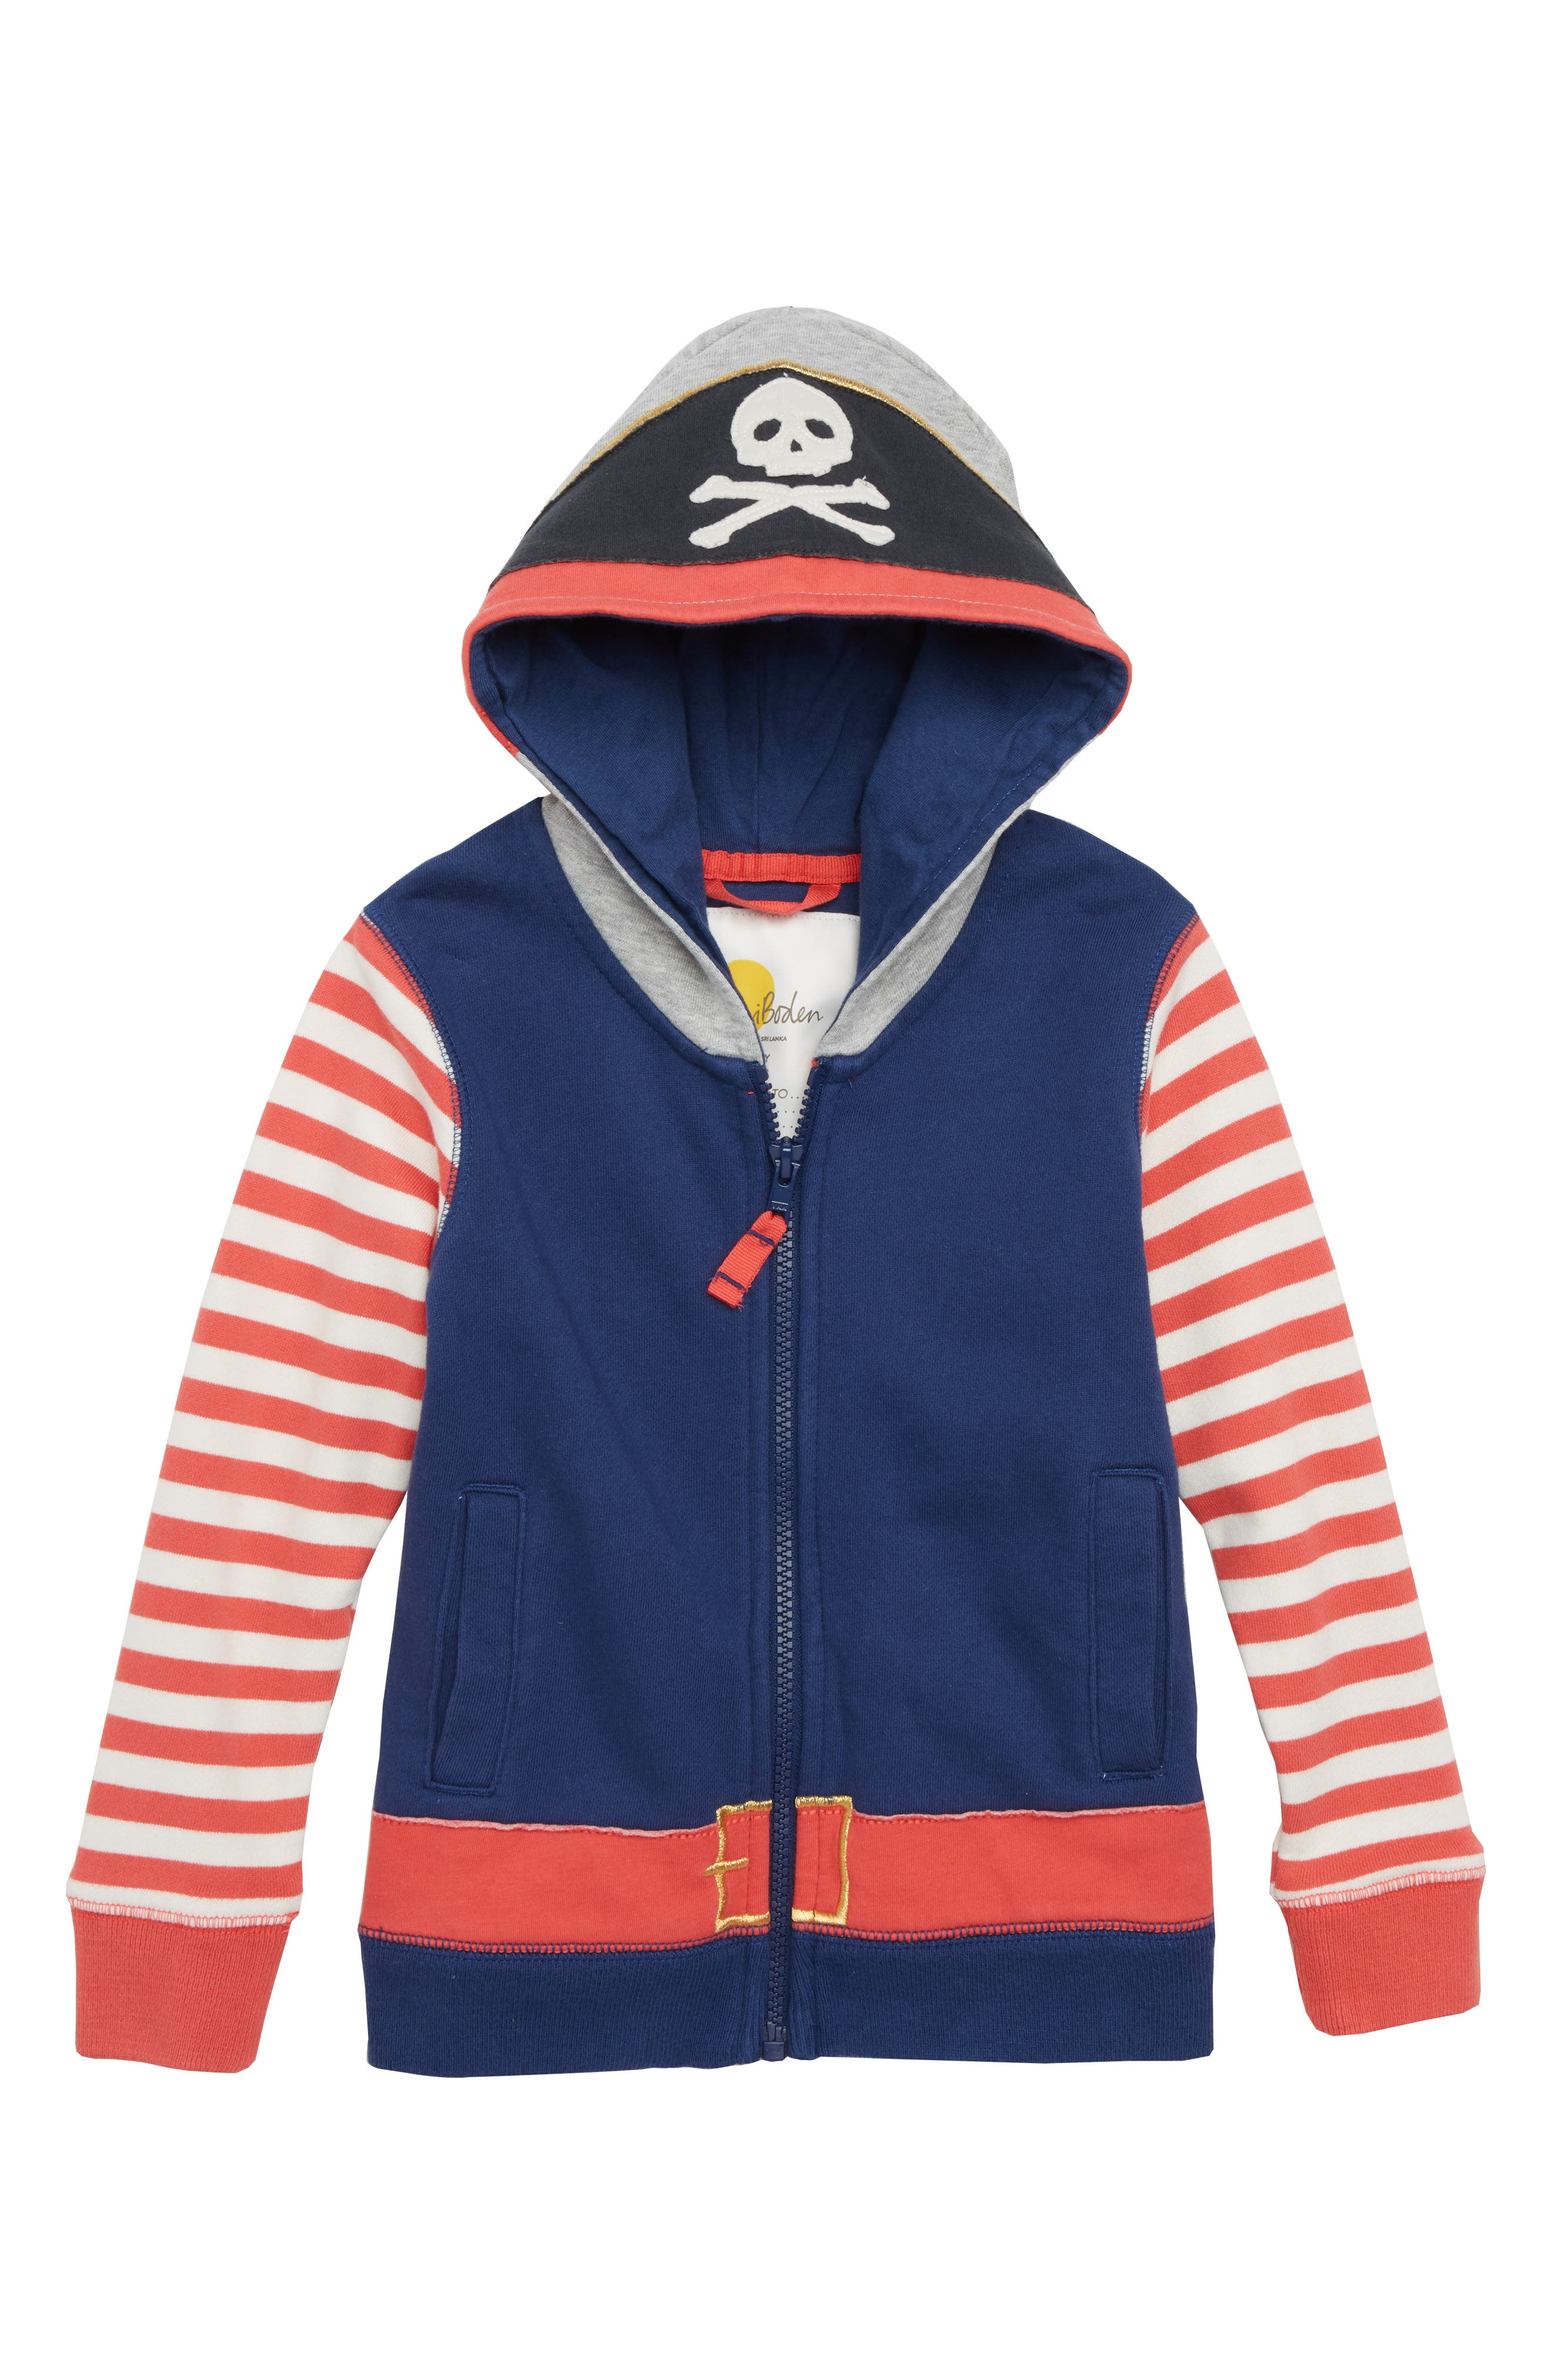 Novelty Pirate Hoodie,                         Main,                         color, Beacon Blue Pirate